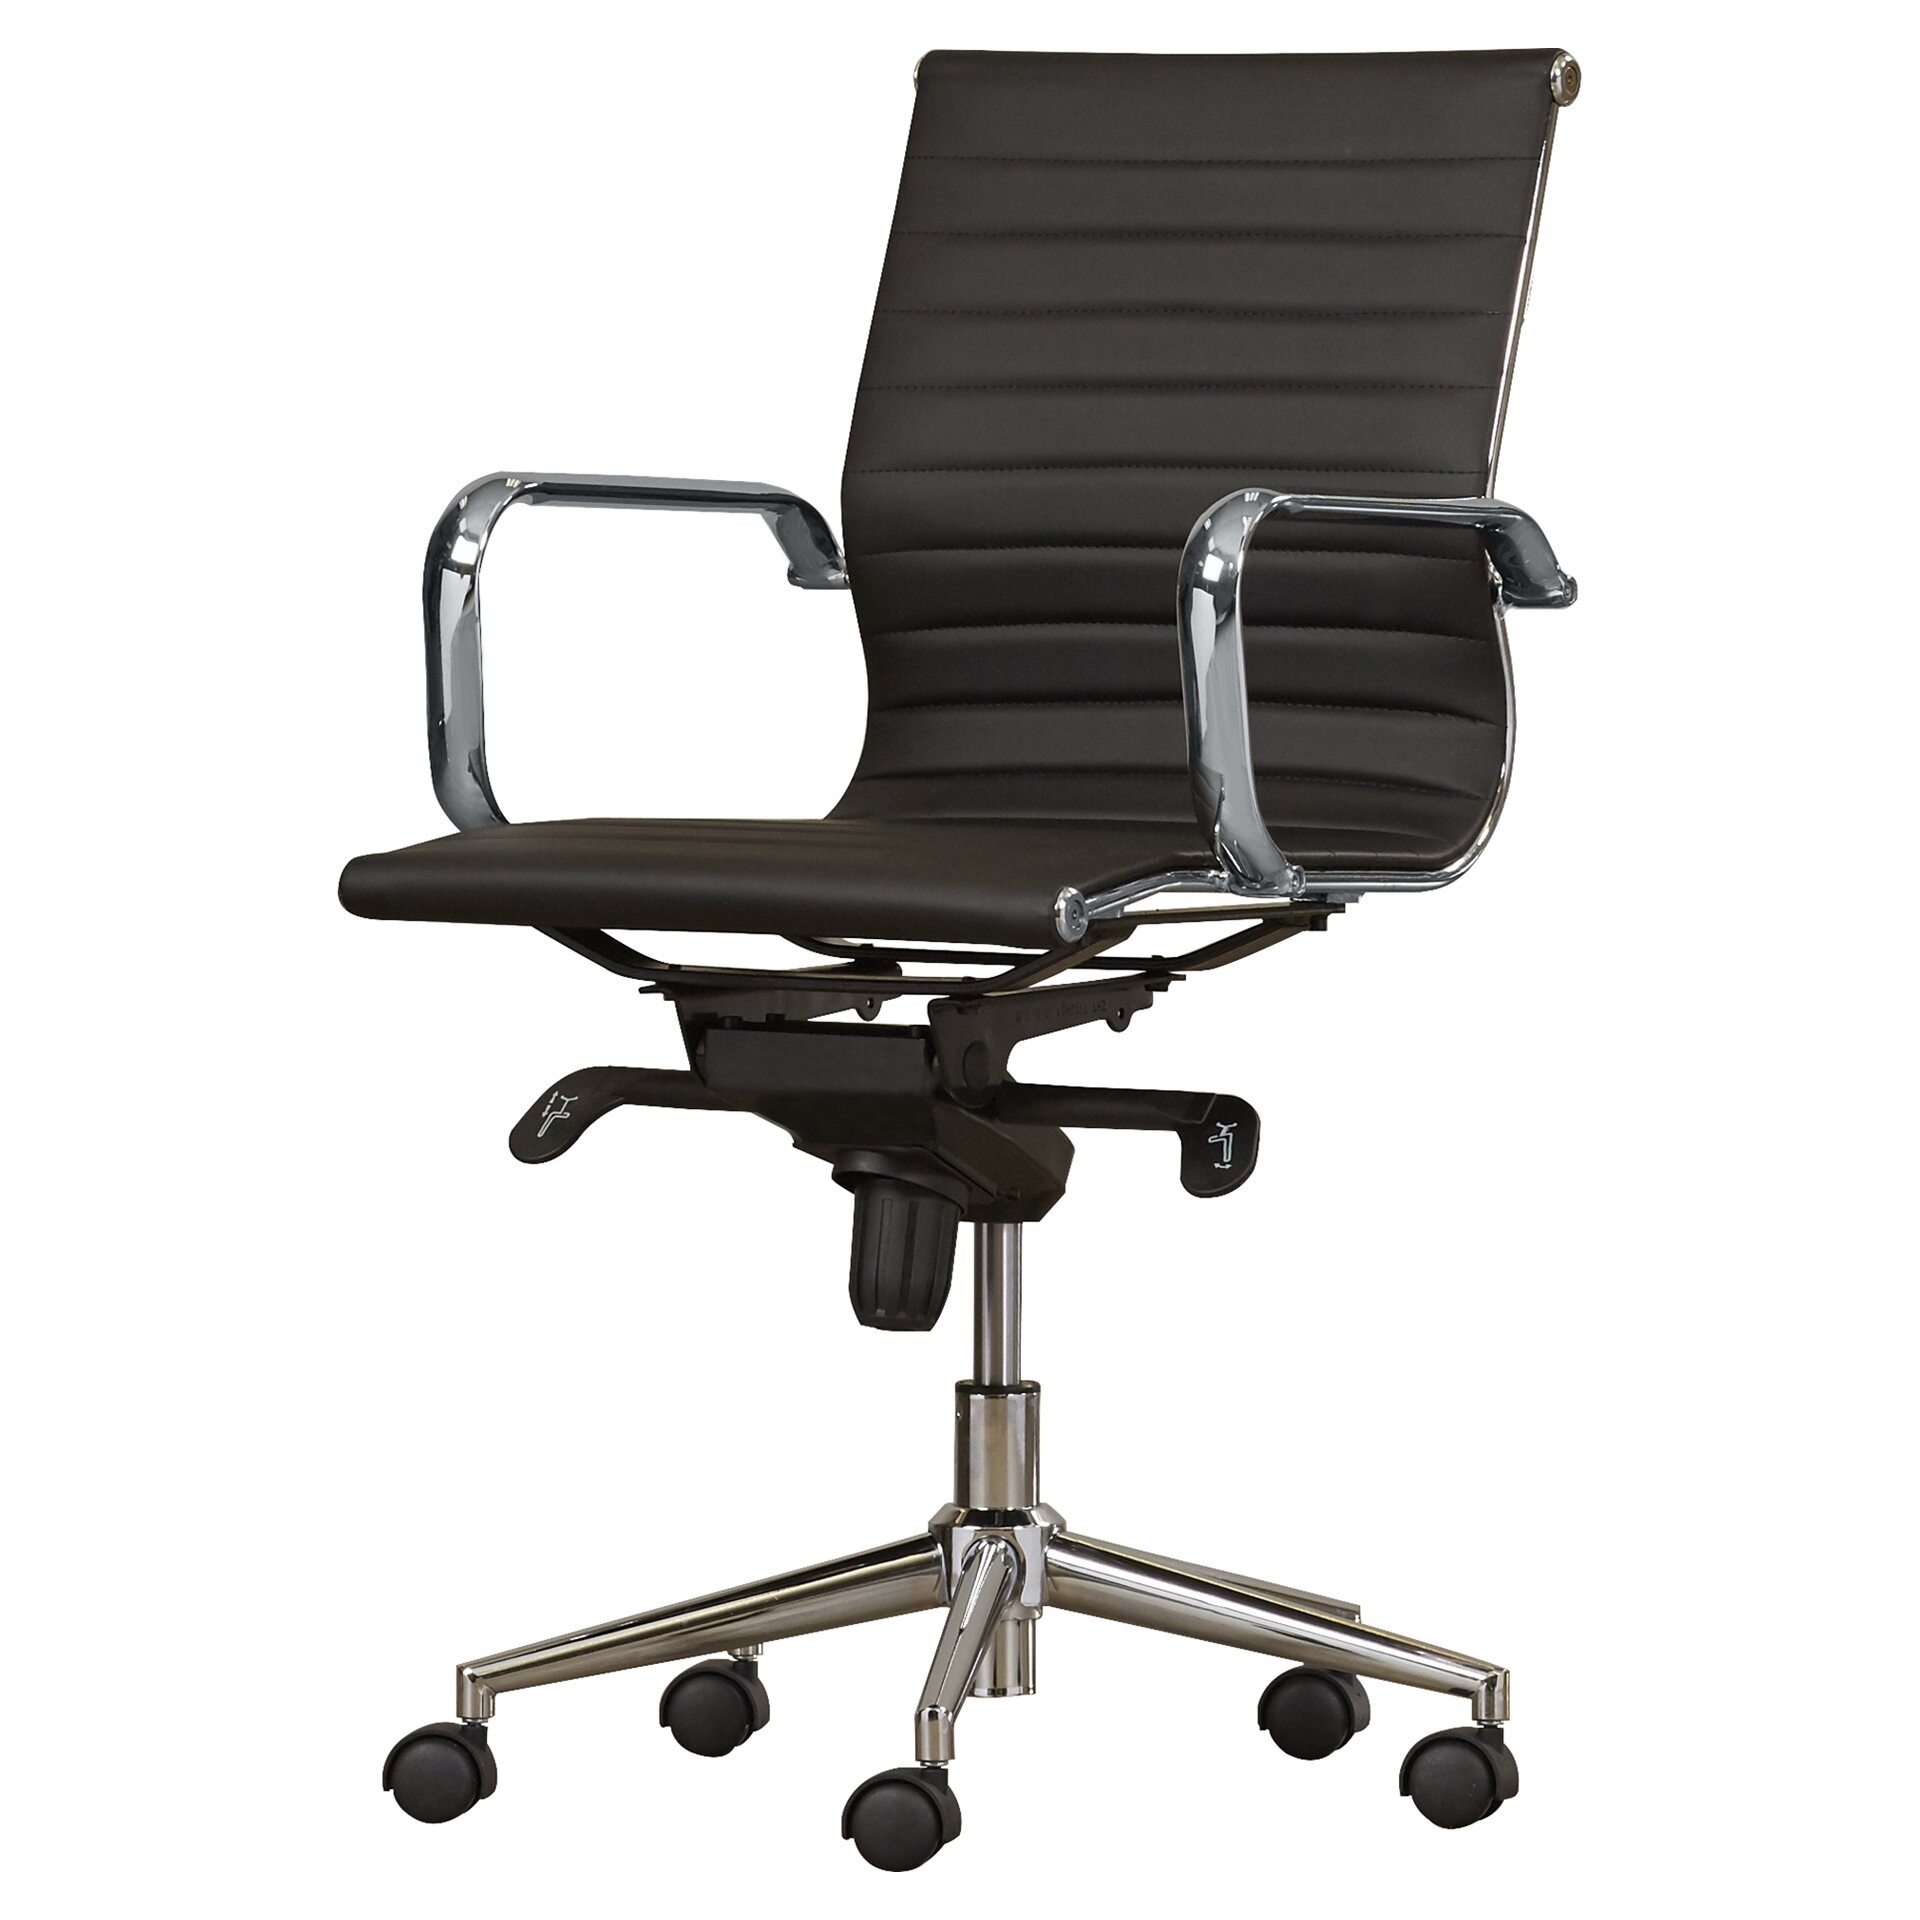 Black and white office chair - Annabell Mid Back Desk Chair